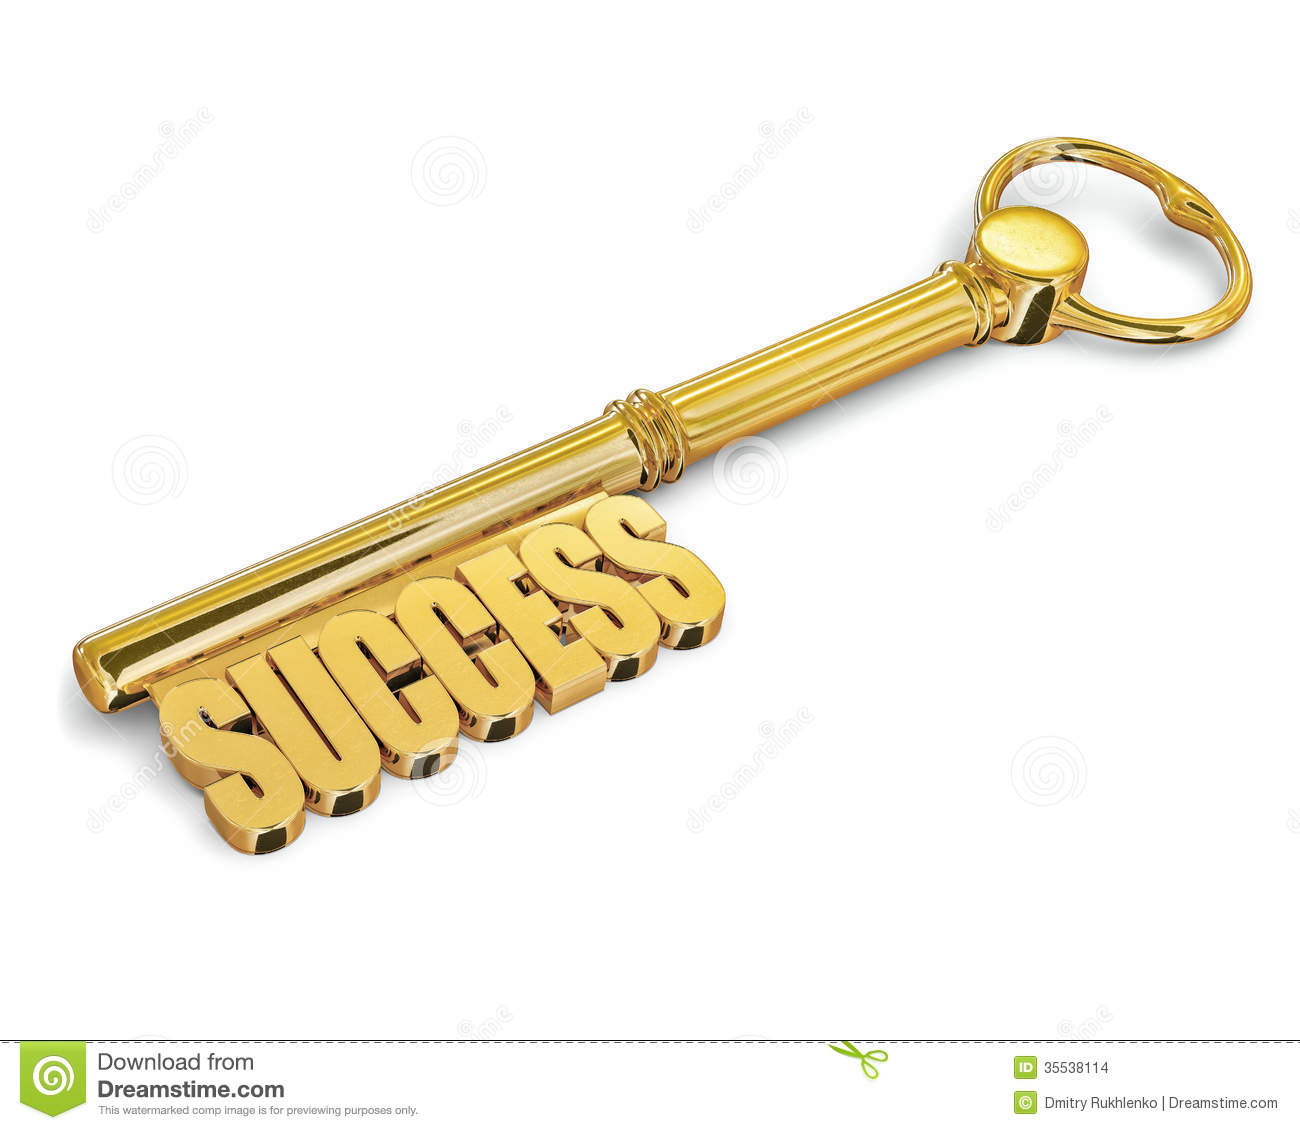 With golden key 3d rendering plan concept with golden key 3d rendering - Key To Success Made Of Gold Isolated Stock Images